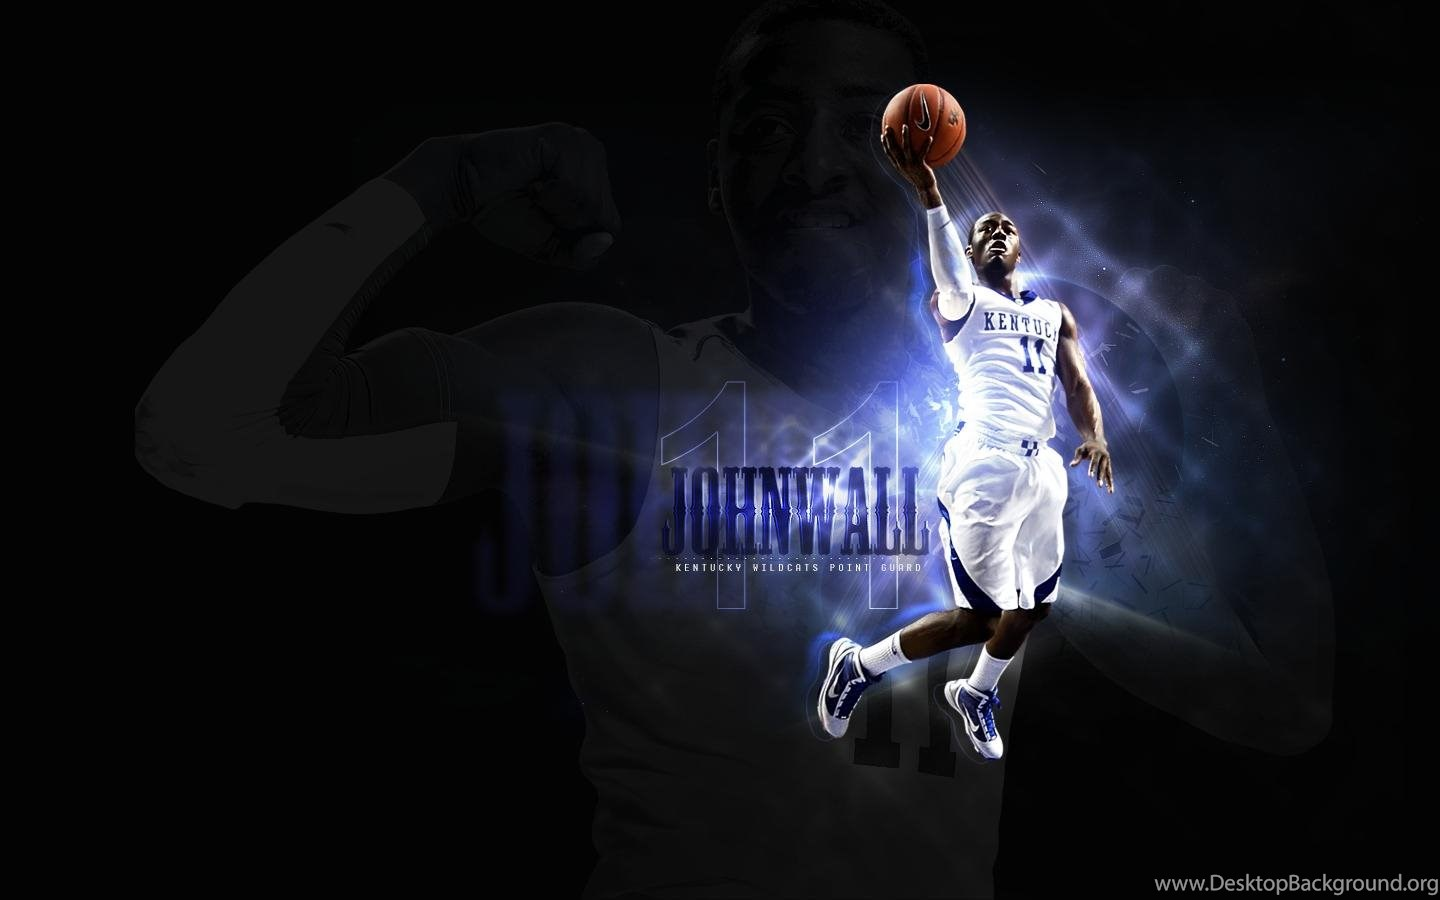 John Wall, Smart, Young And Hard To Beat Player, Washington